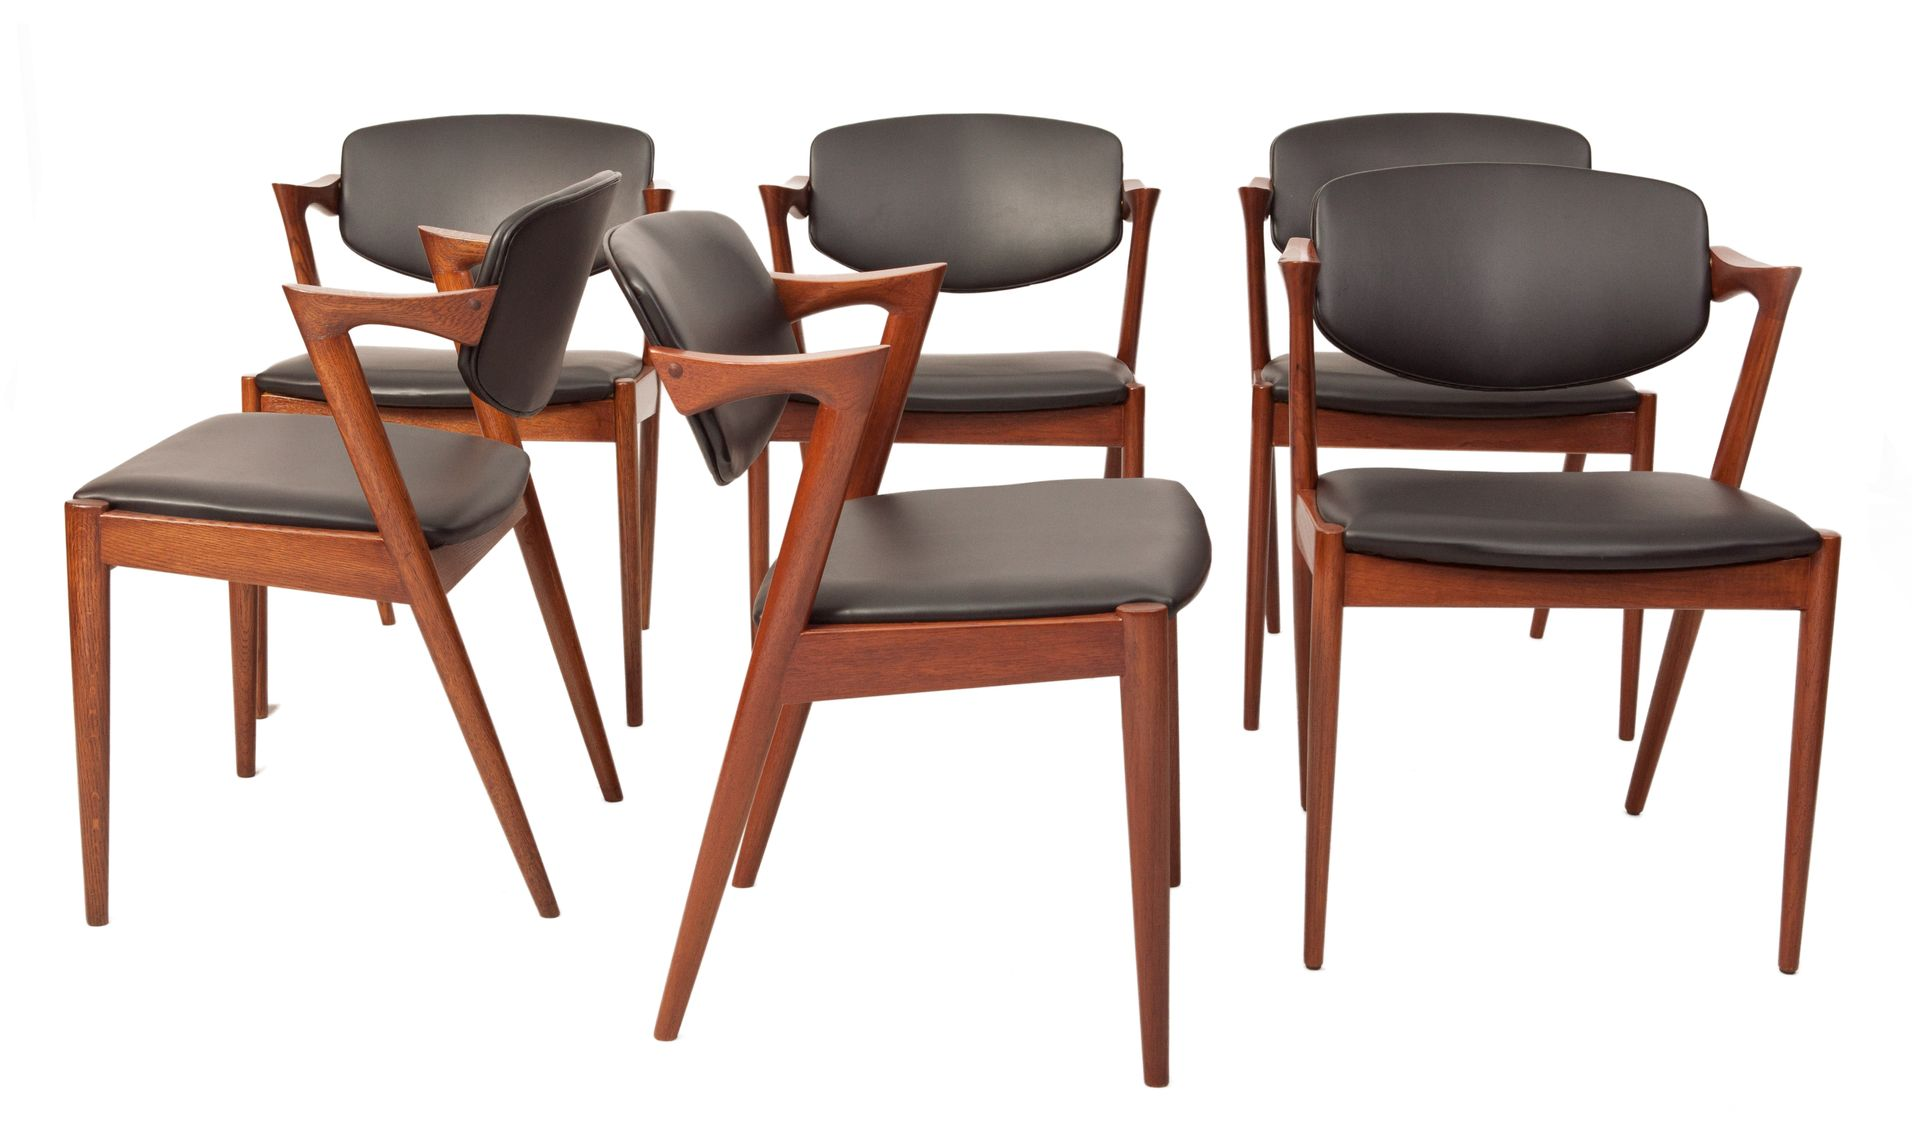 Vintage side chairs by kai kristiansen in teak set of 6 for sale at pamono - Kai kristiansen chairs ...